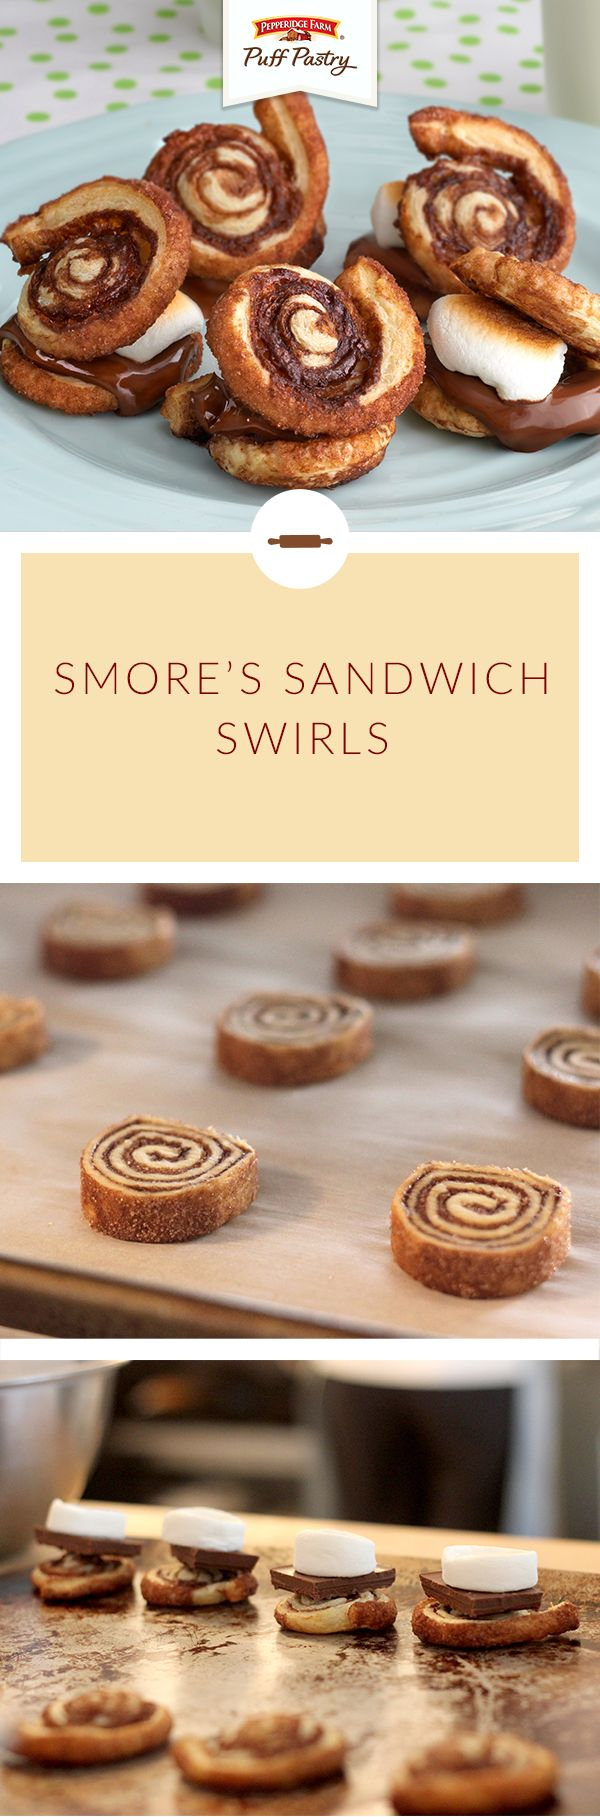 Celebrate National S'mores Day any day with S'more Sandwich Swirls! Melted chocolate and toasted marshmallow are sandwiched between two golden, flaky Puff Pastry and cocoa swirls for a perfect summertime treat.